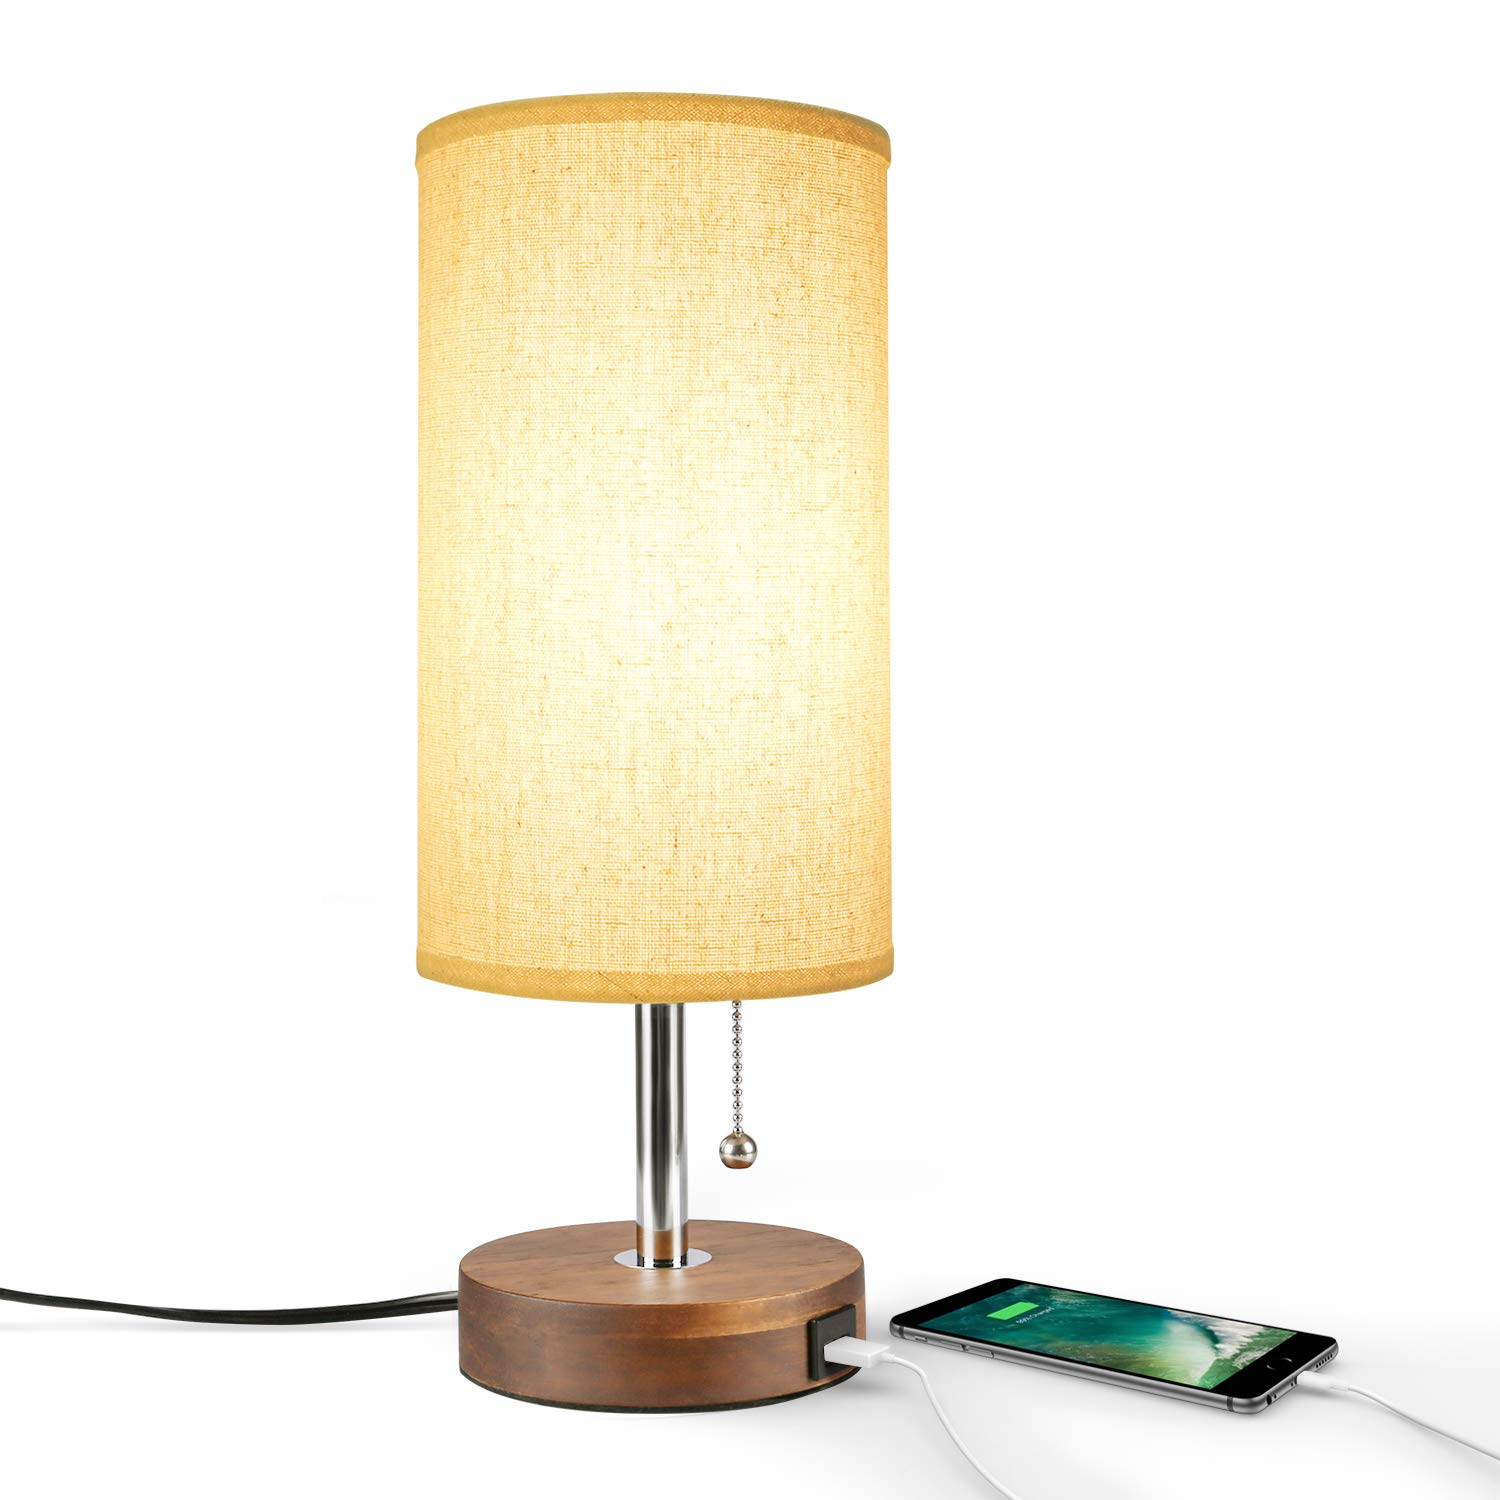 Merveilleux USB Table Lamp, Bedside Desk Lamp, Seealle Modern Nightstand Lamp With USB  Charging Port,Unique Round Lampshde,Convenient Pull Chain,Ambient Light For  ...